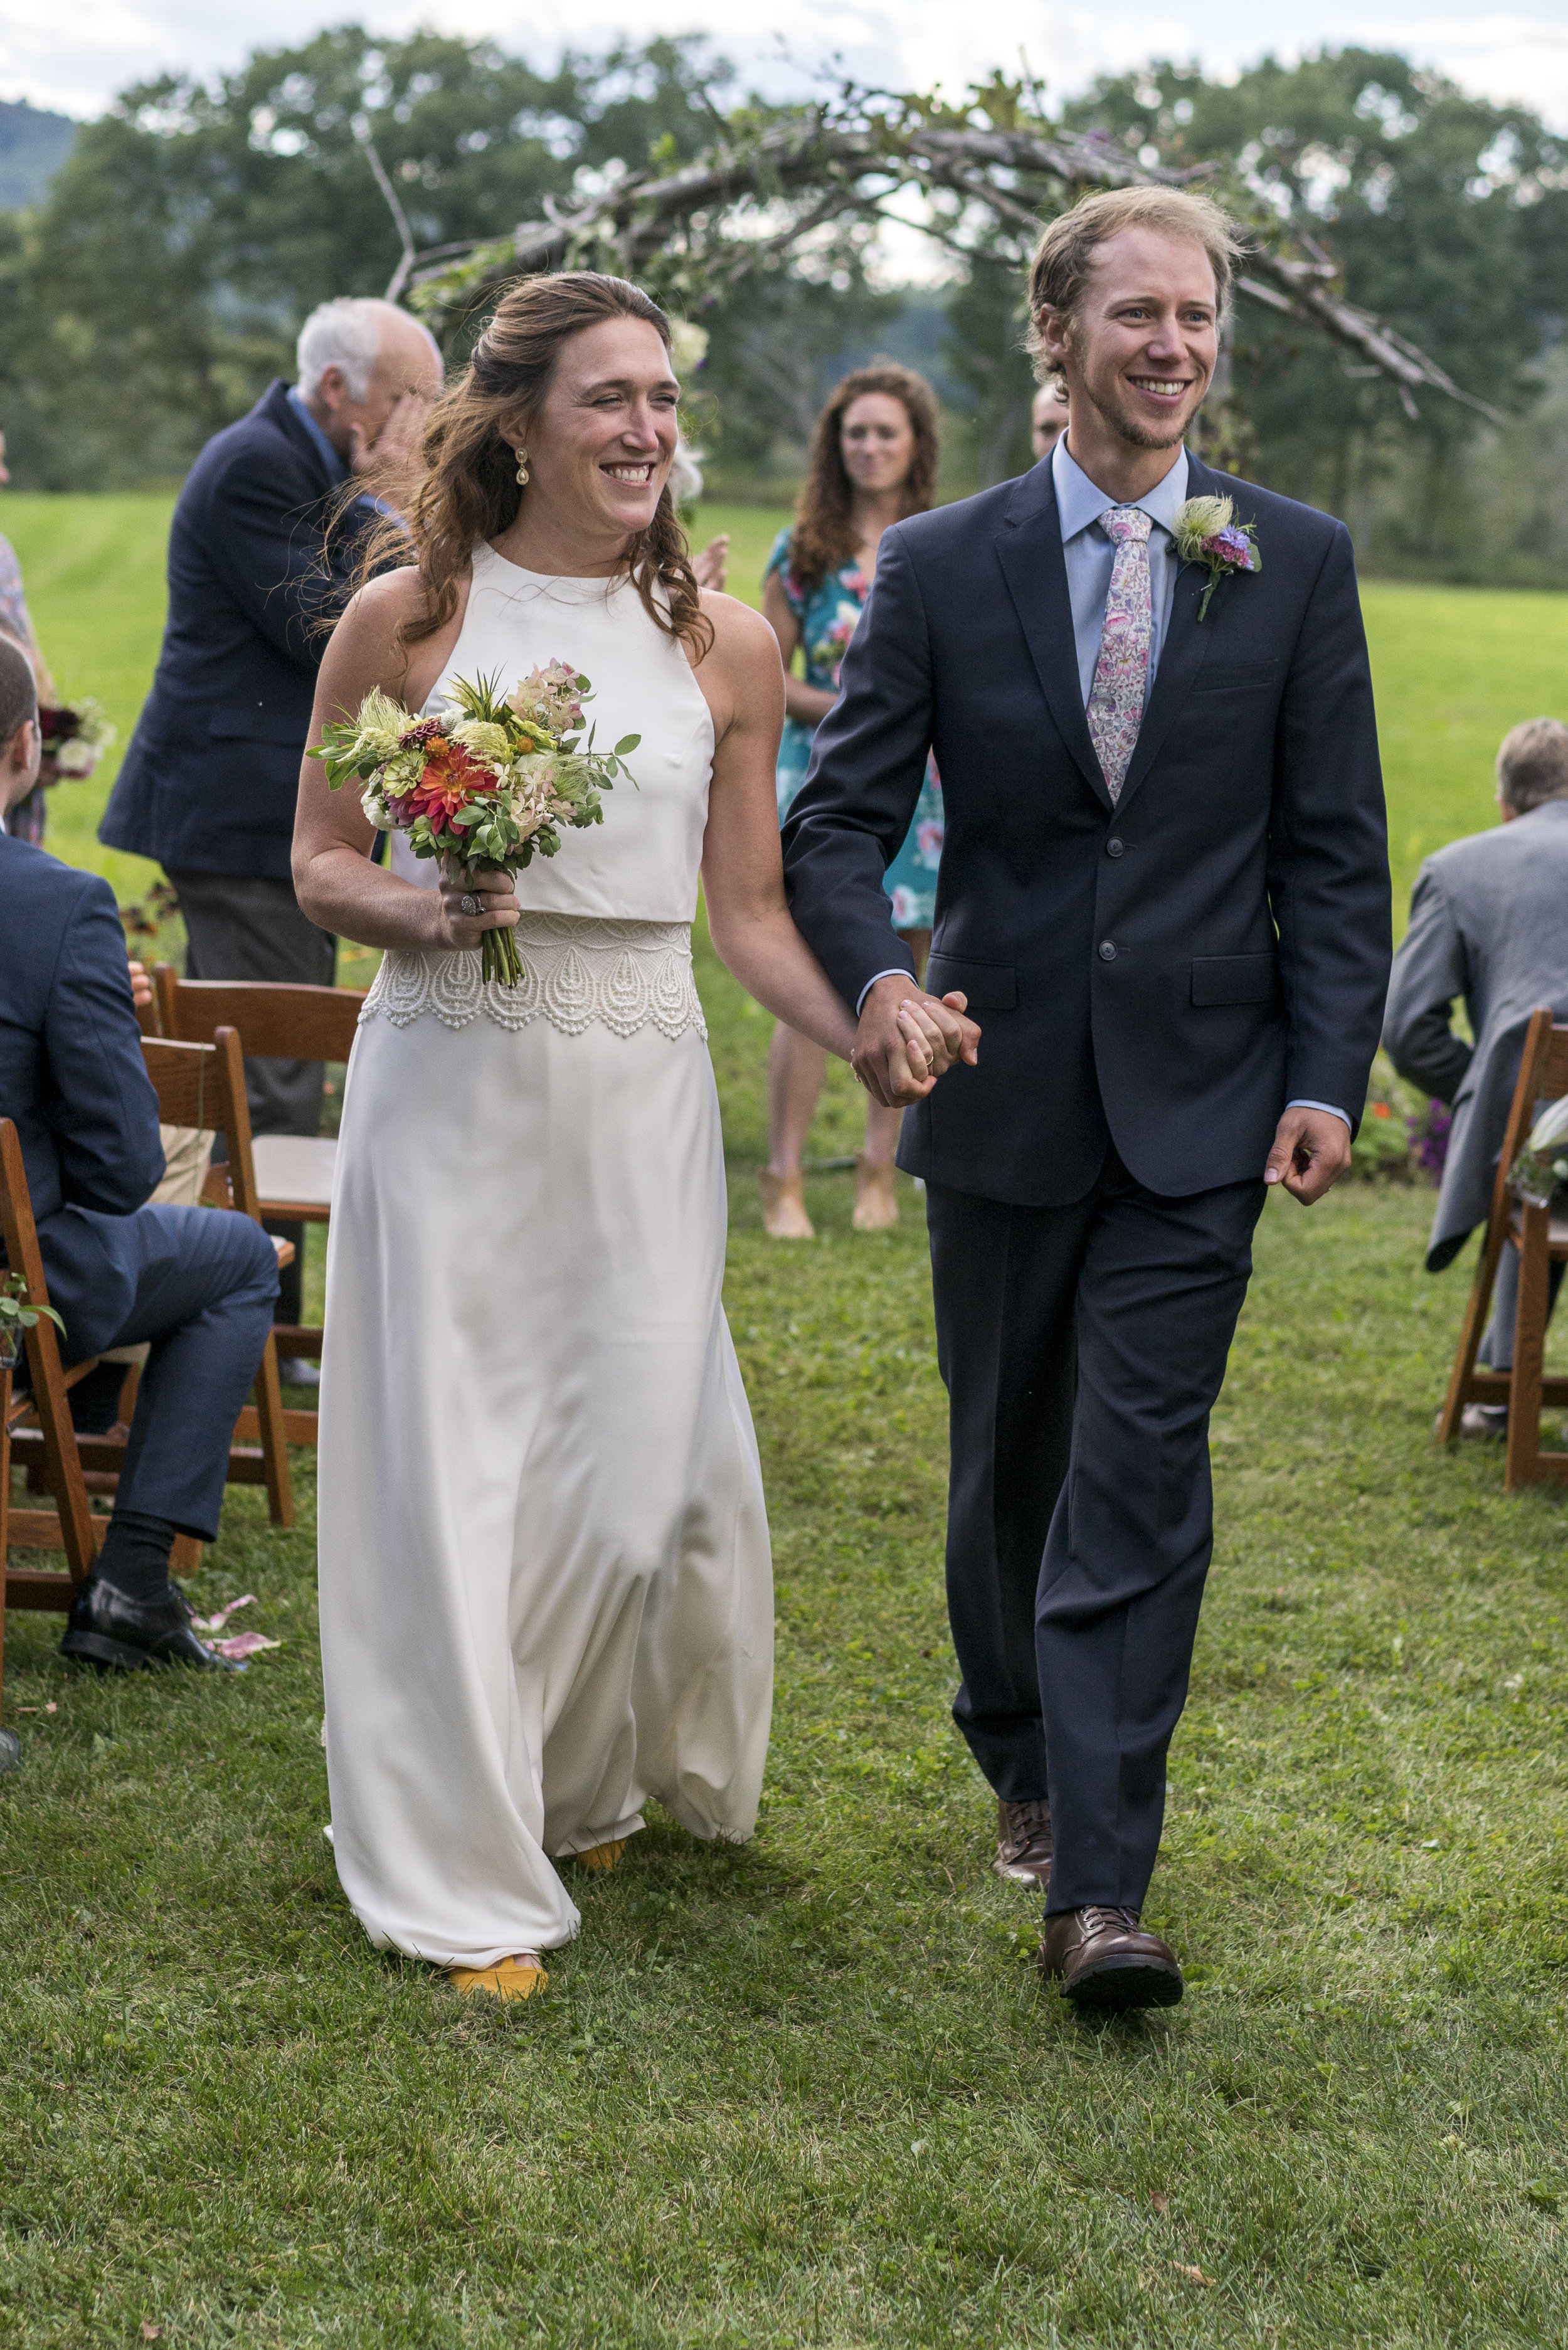 Com_HancockWedding_JPGs (279 of 368).jpg